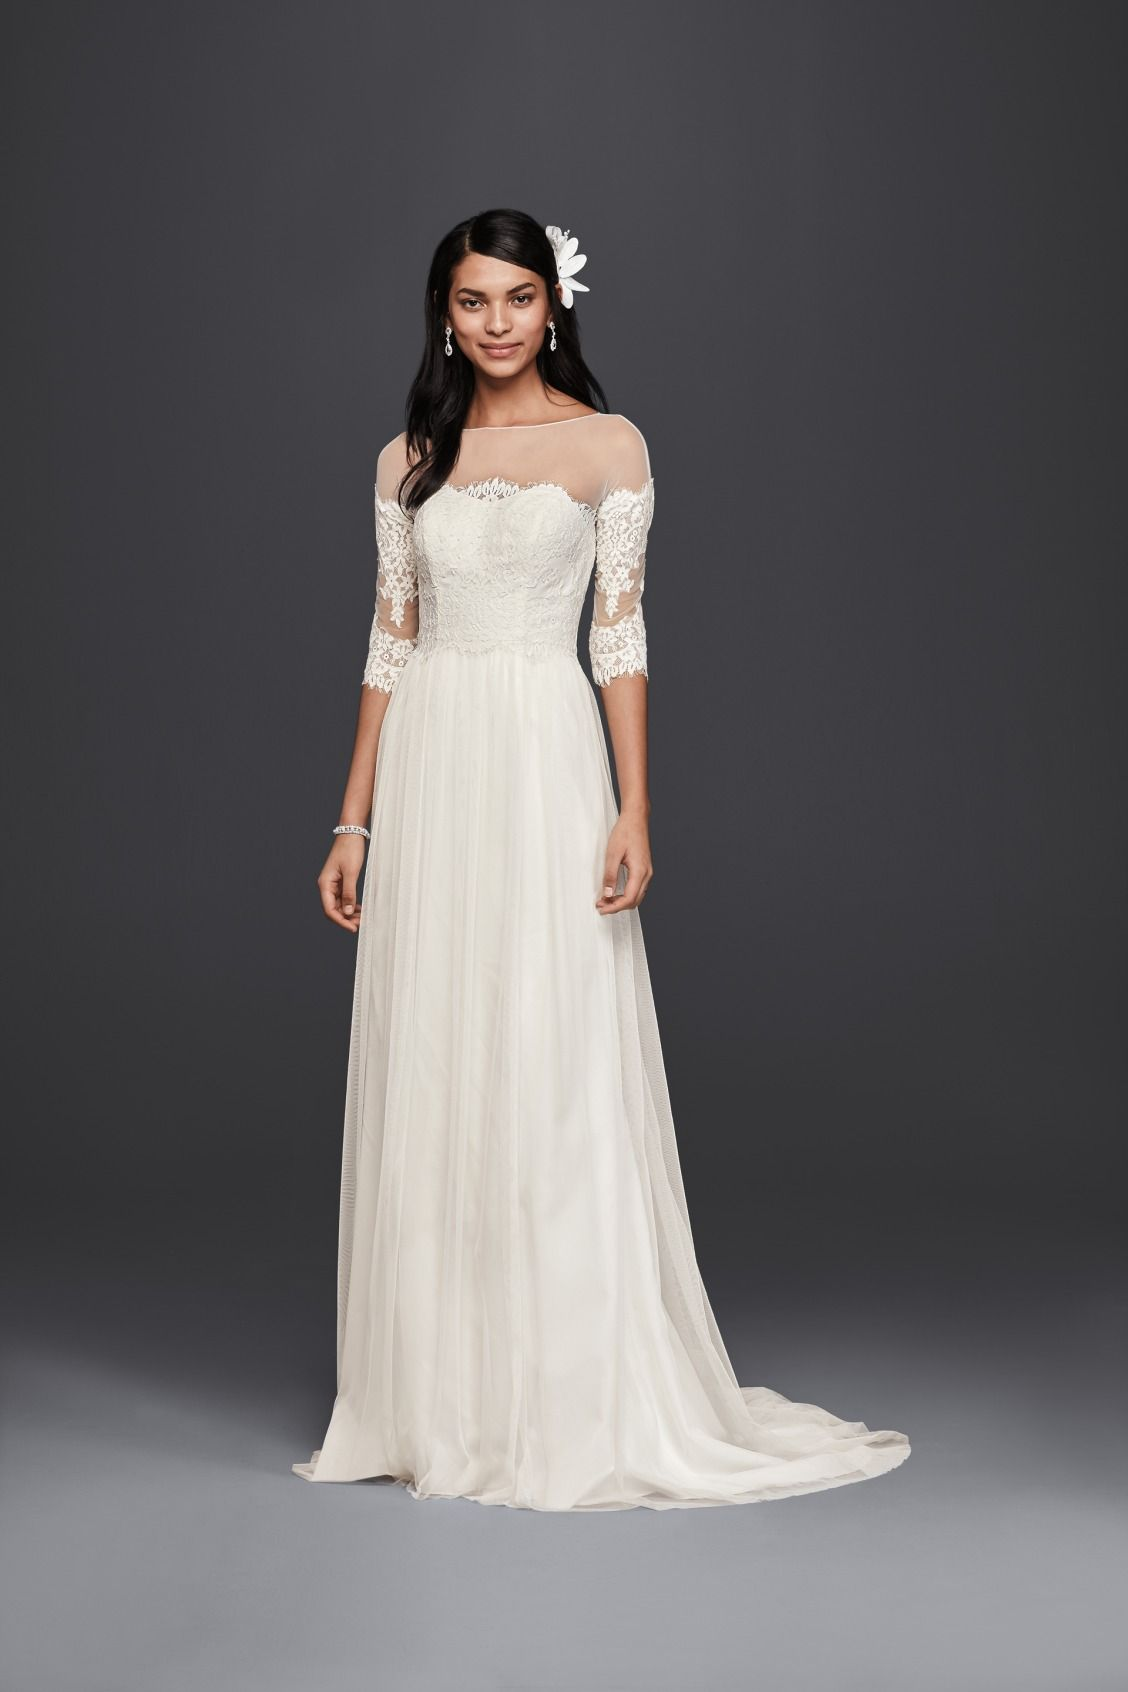 FOR THE VINTAGE BRIDE: Illusion Neckline and Lace Sleeves A-Line ...